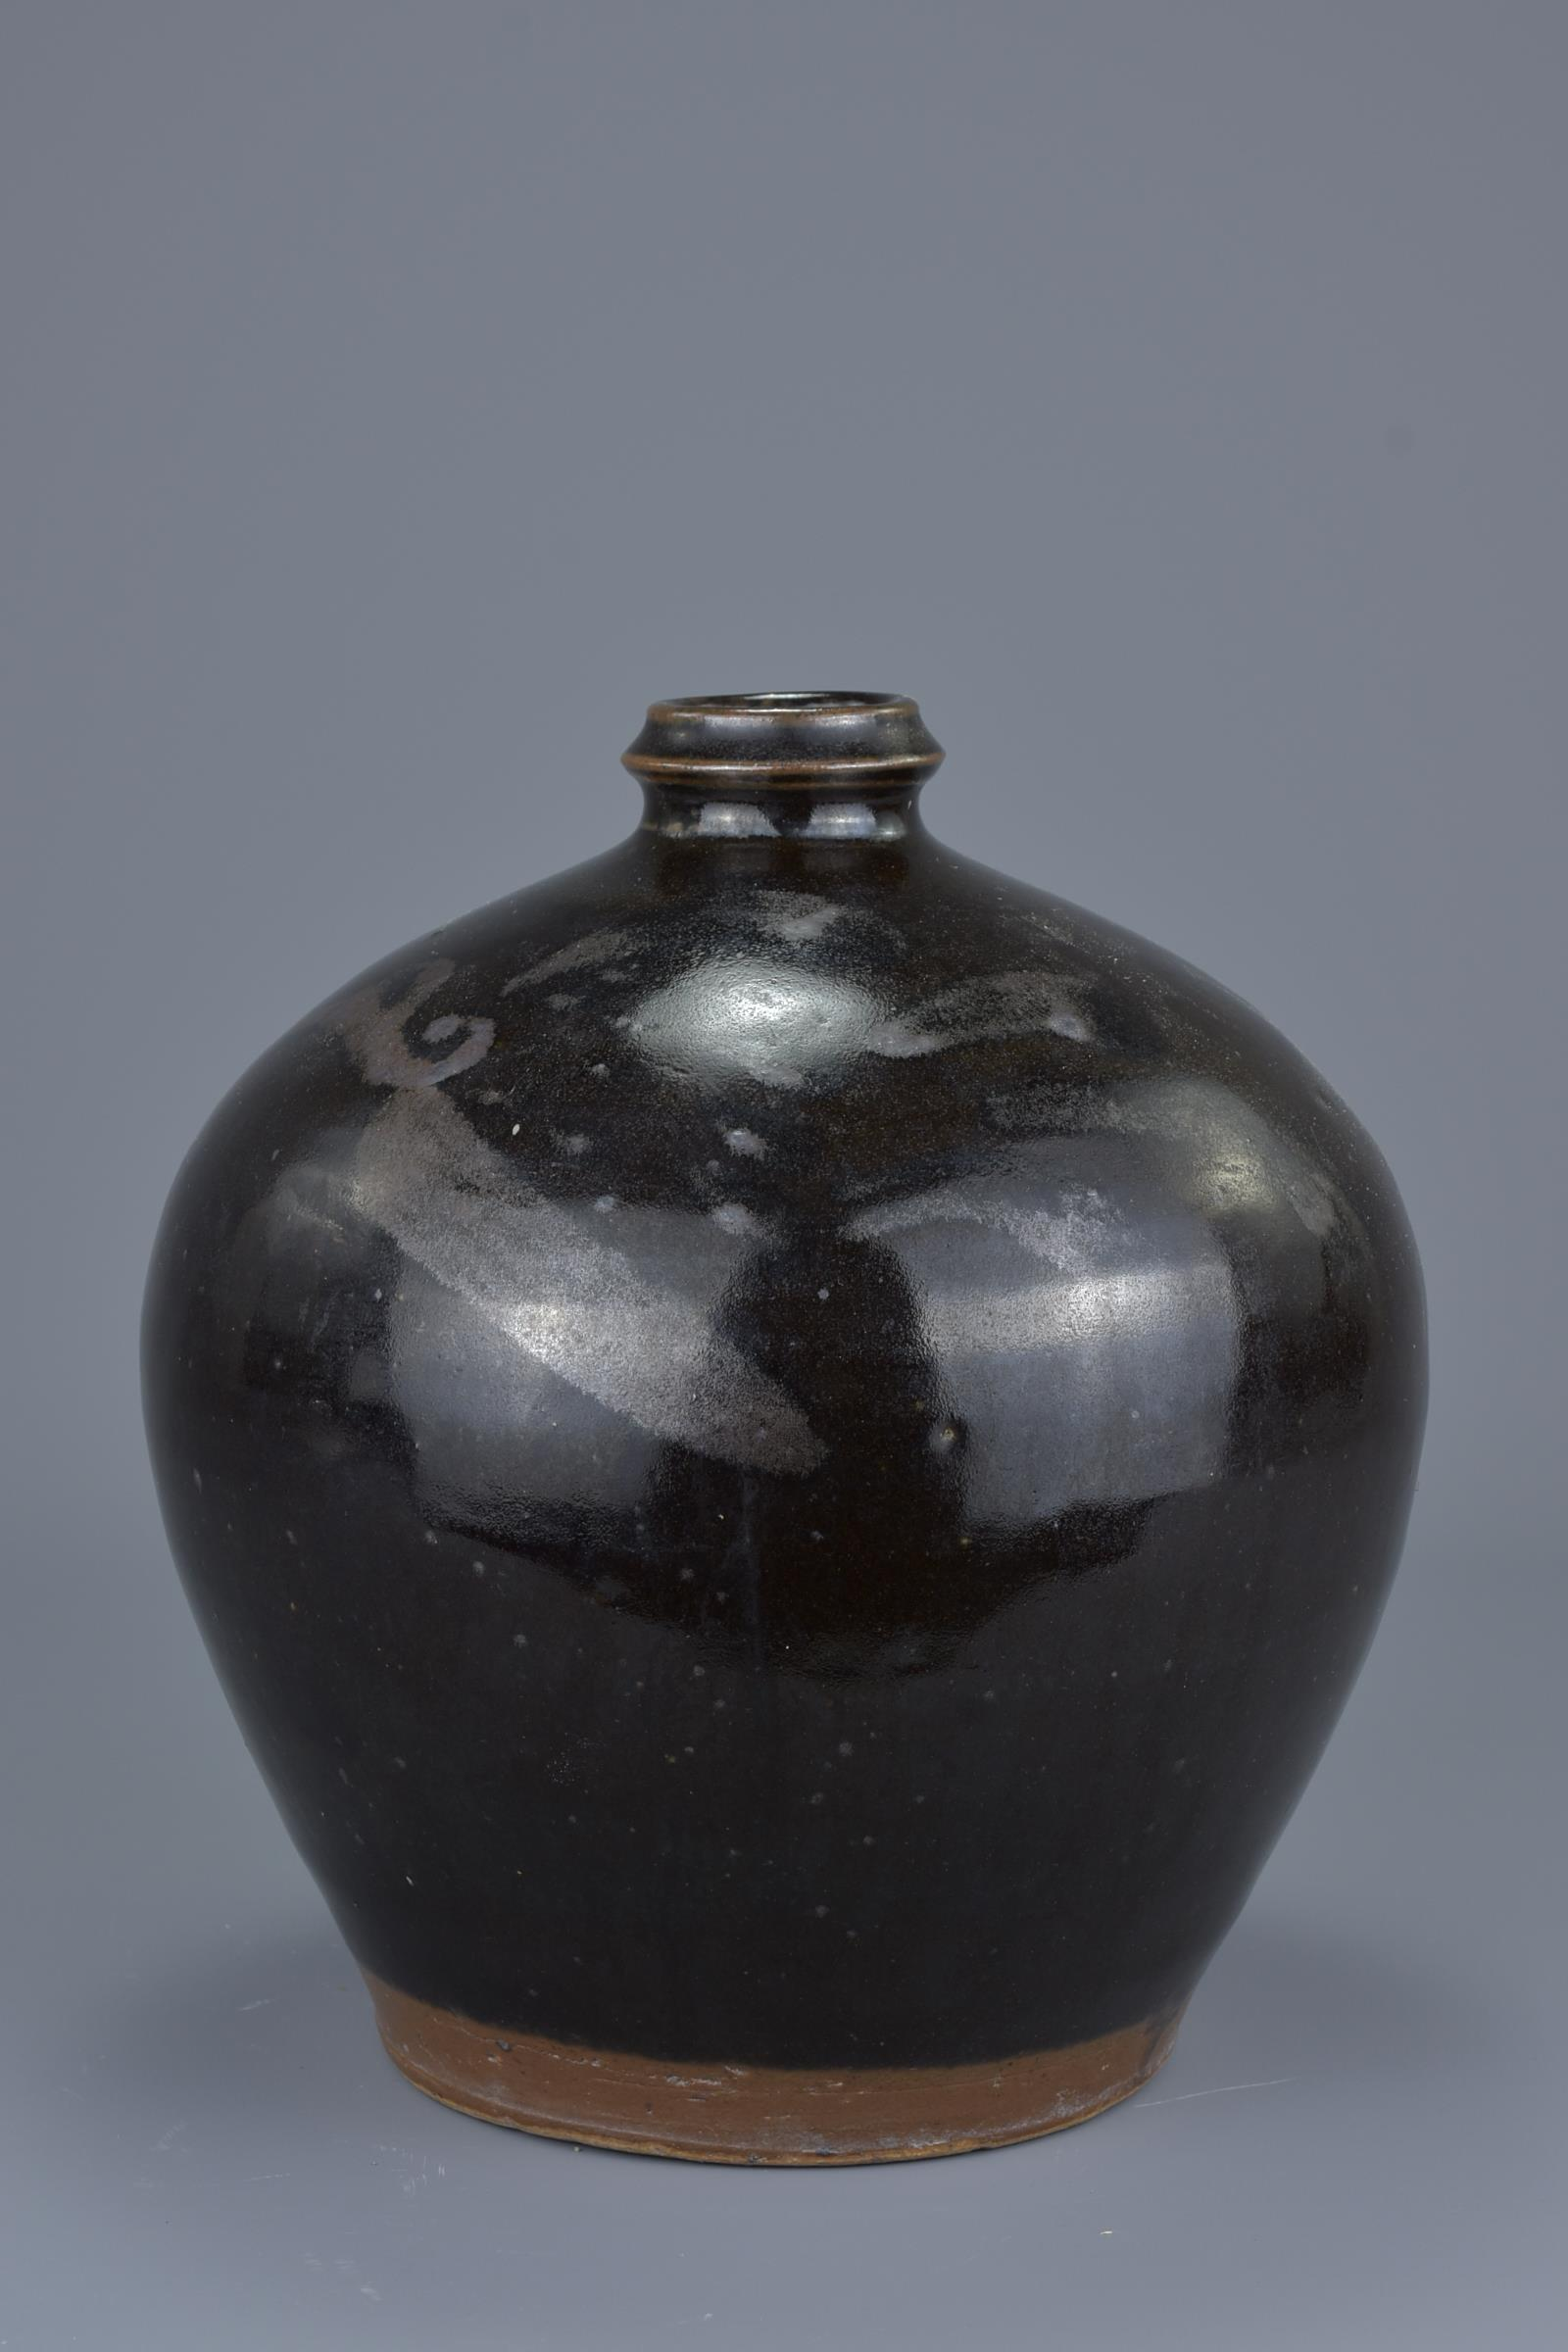 Lot 10 - A Chinese Cizhou type Ovoid Bottle with Bird Pattern – Ming Dynasty or Later